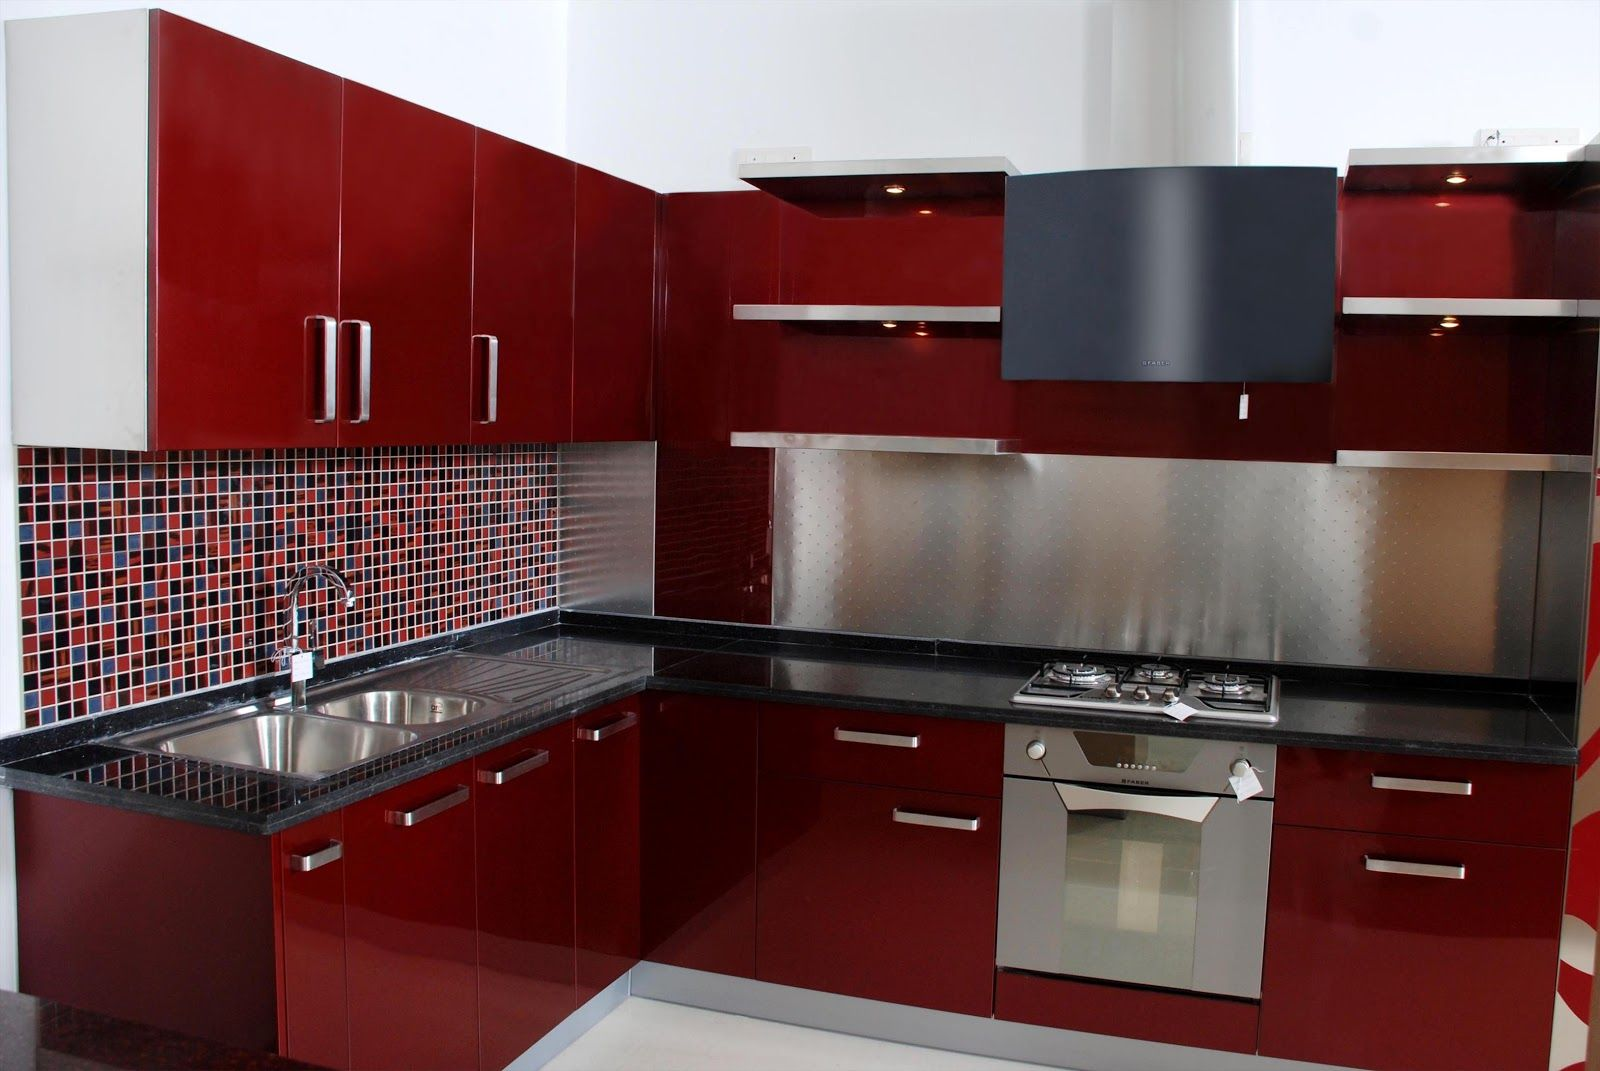 Parallel kitchen design india google search kitchen for Interior designs of cupboards